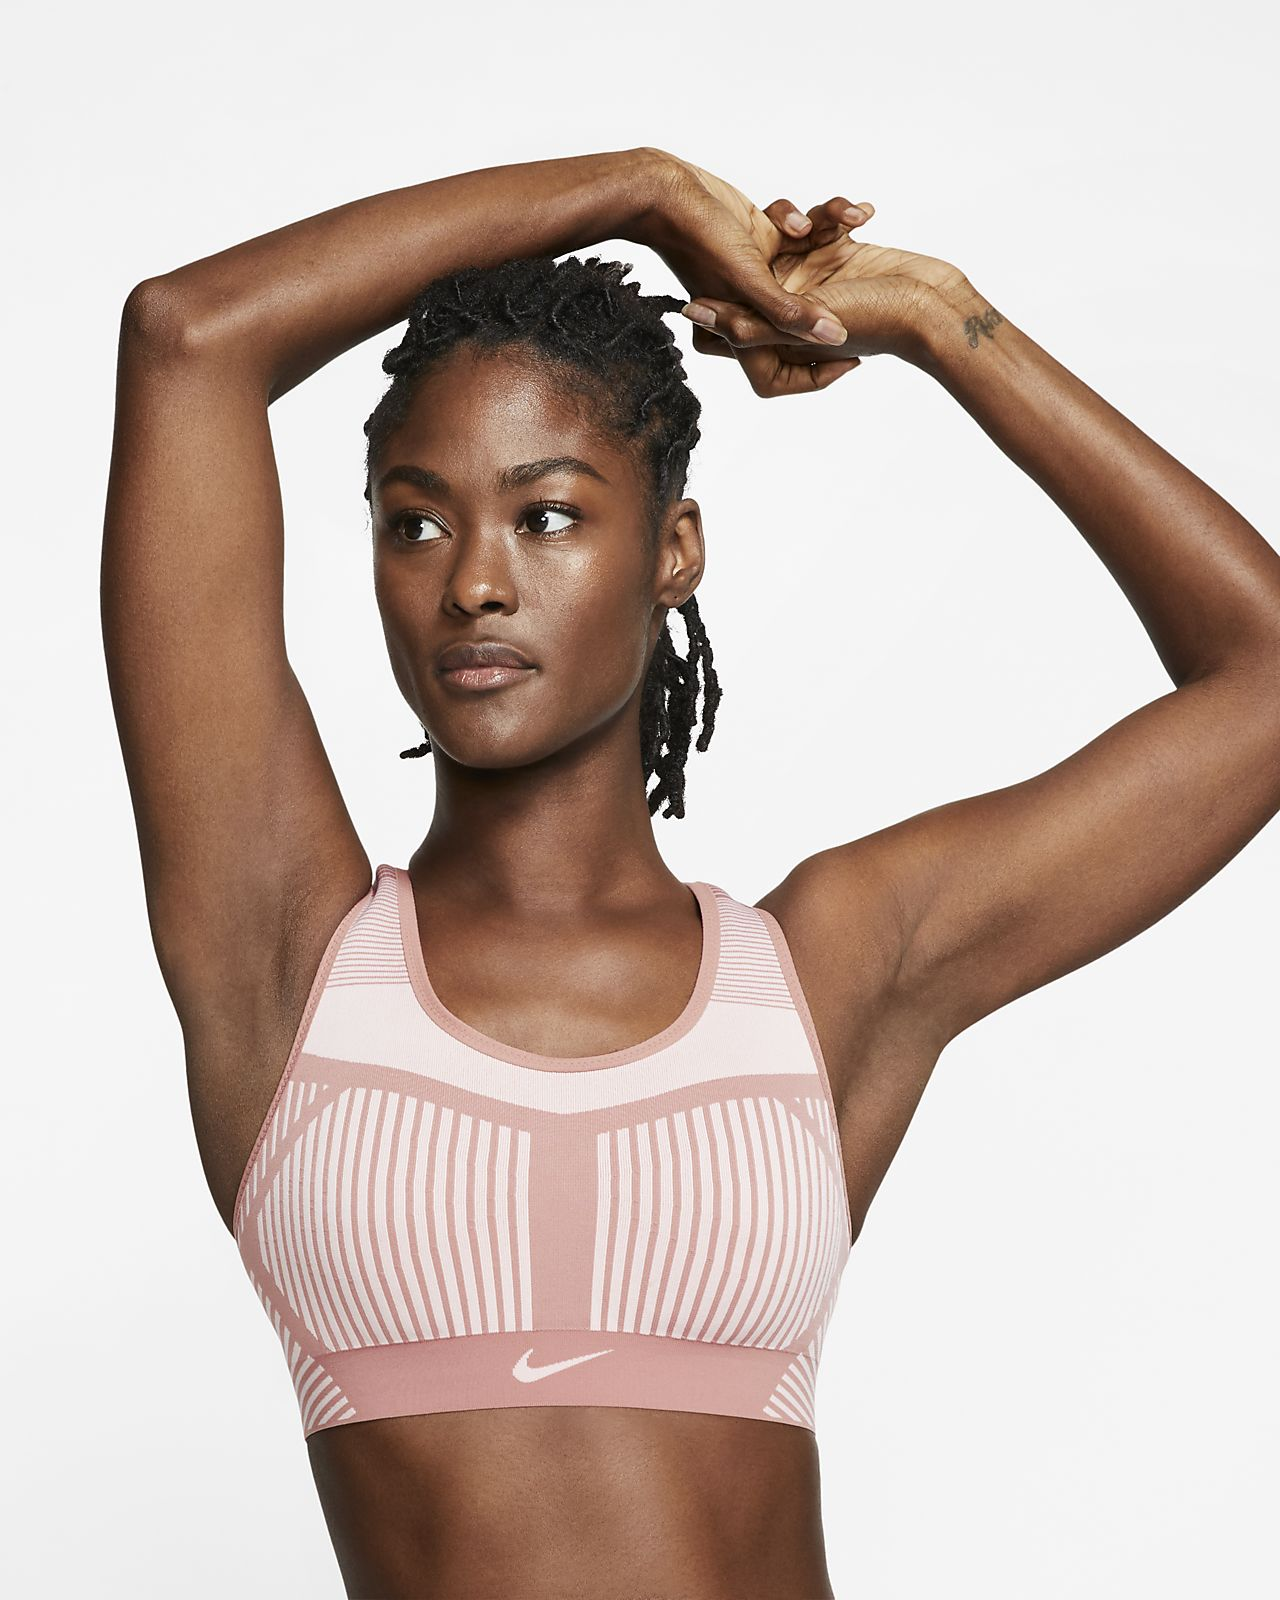 Nike FE/NOM Flyknit Women's High-Support Sports Bra